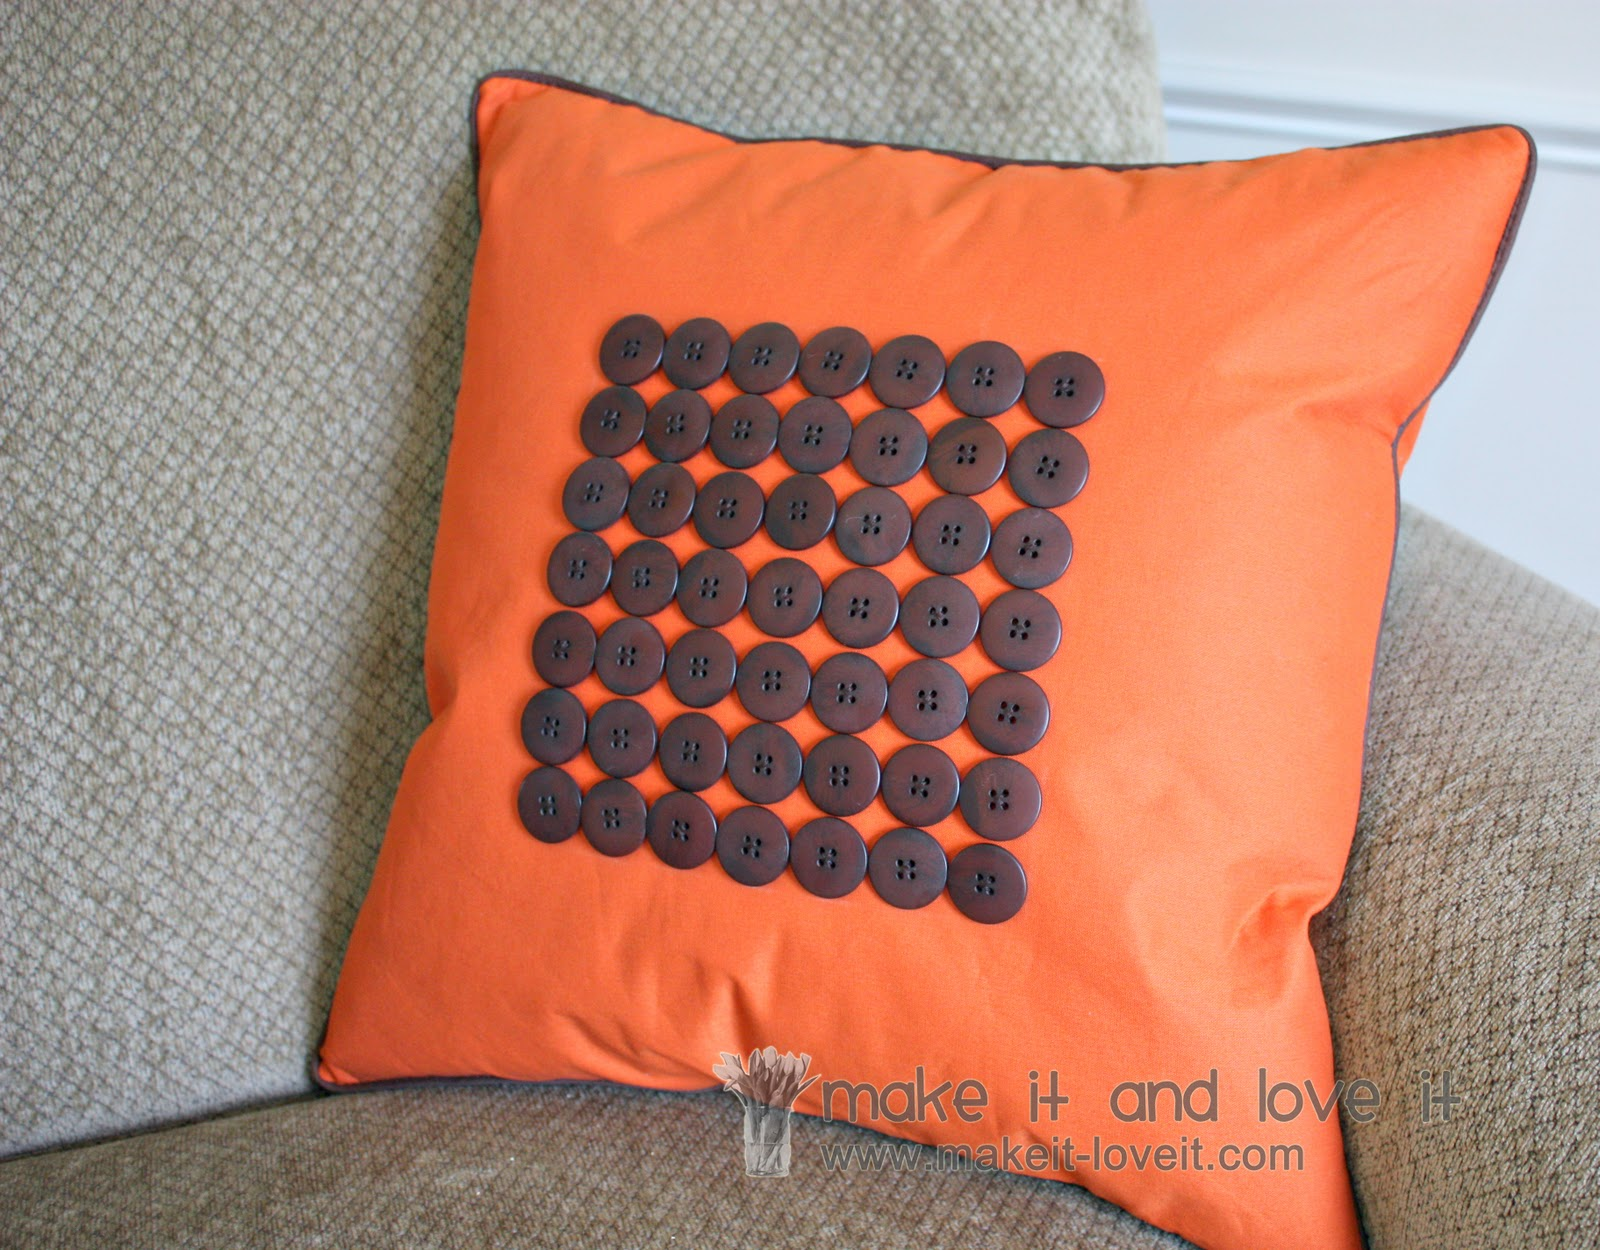 How To Make A Round Throw Pillow Cover : Decorate My Home, Part 20 - Button/Piping Pillow Cover Make It and Love It